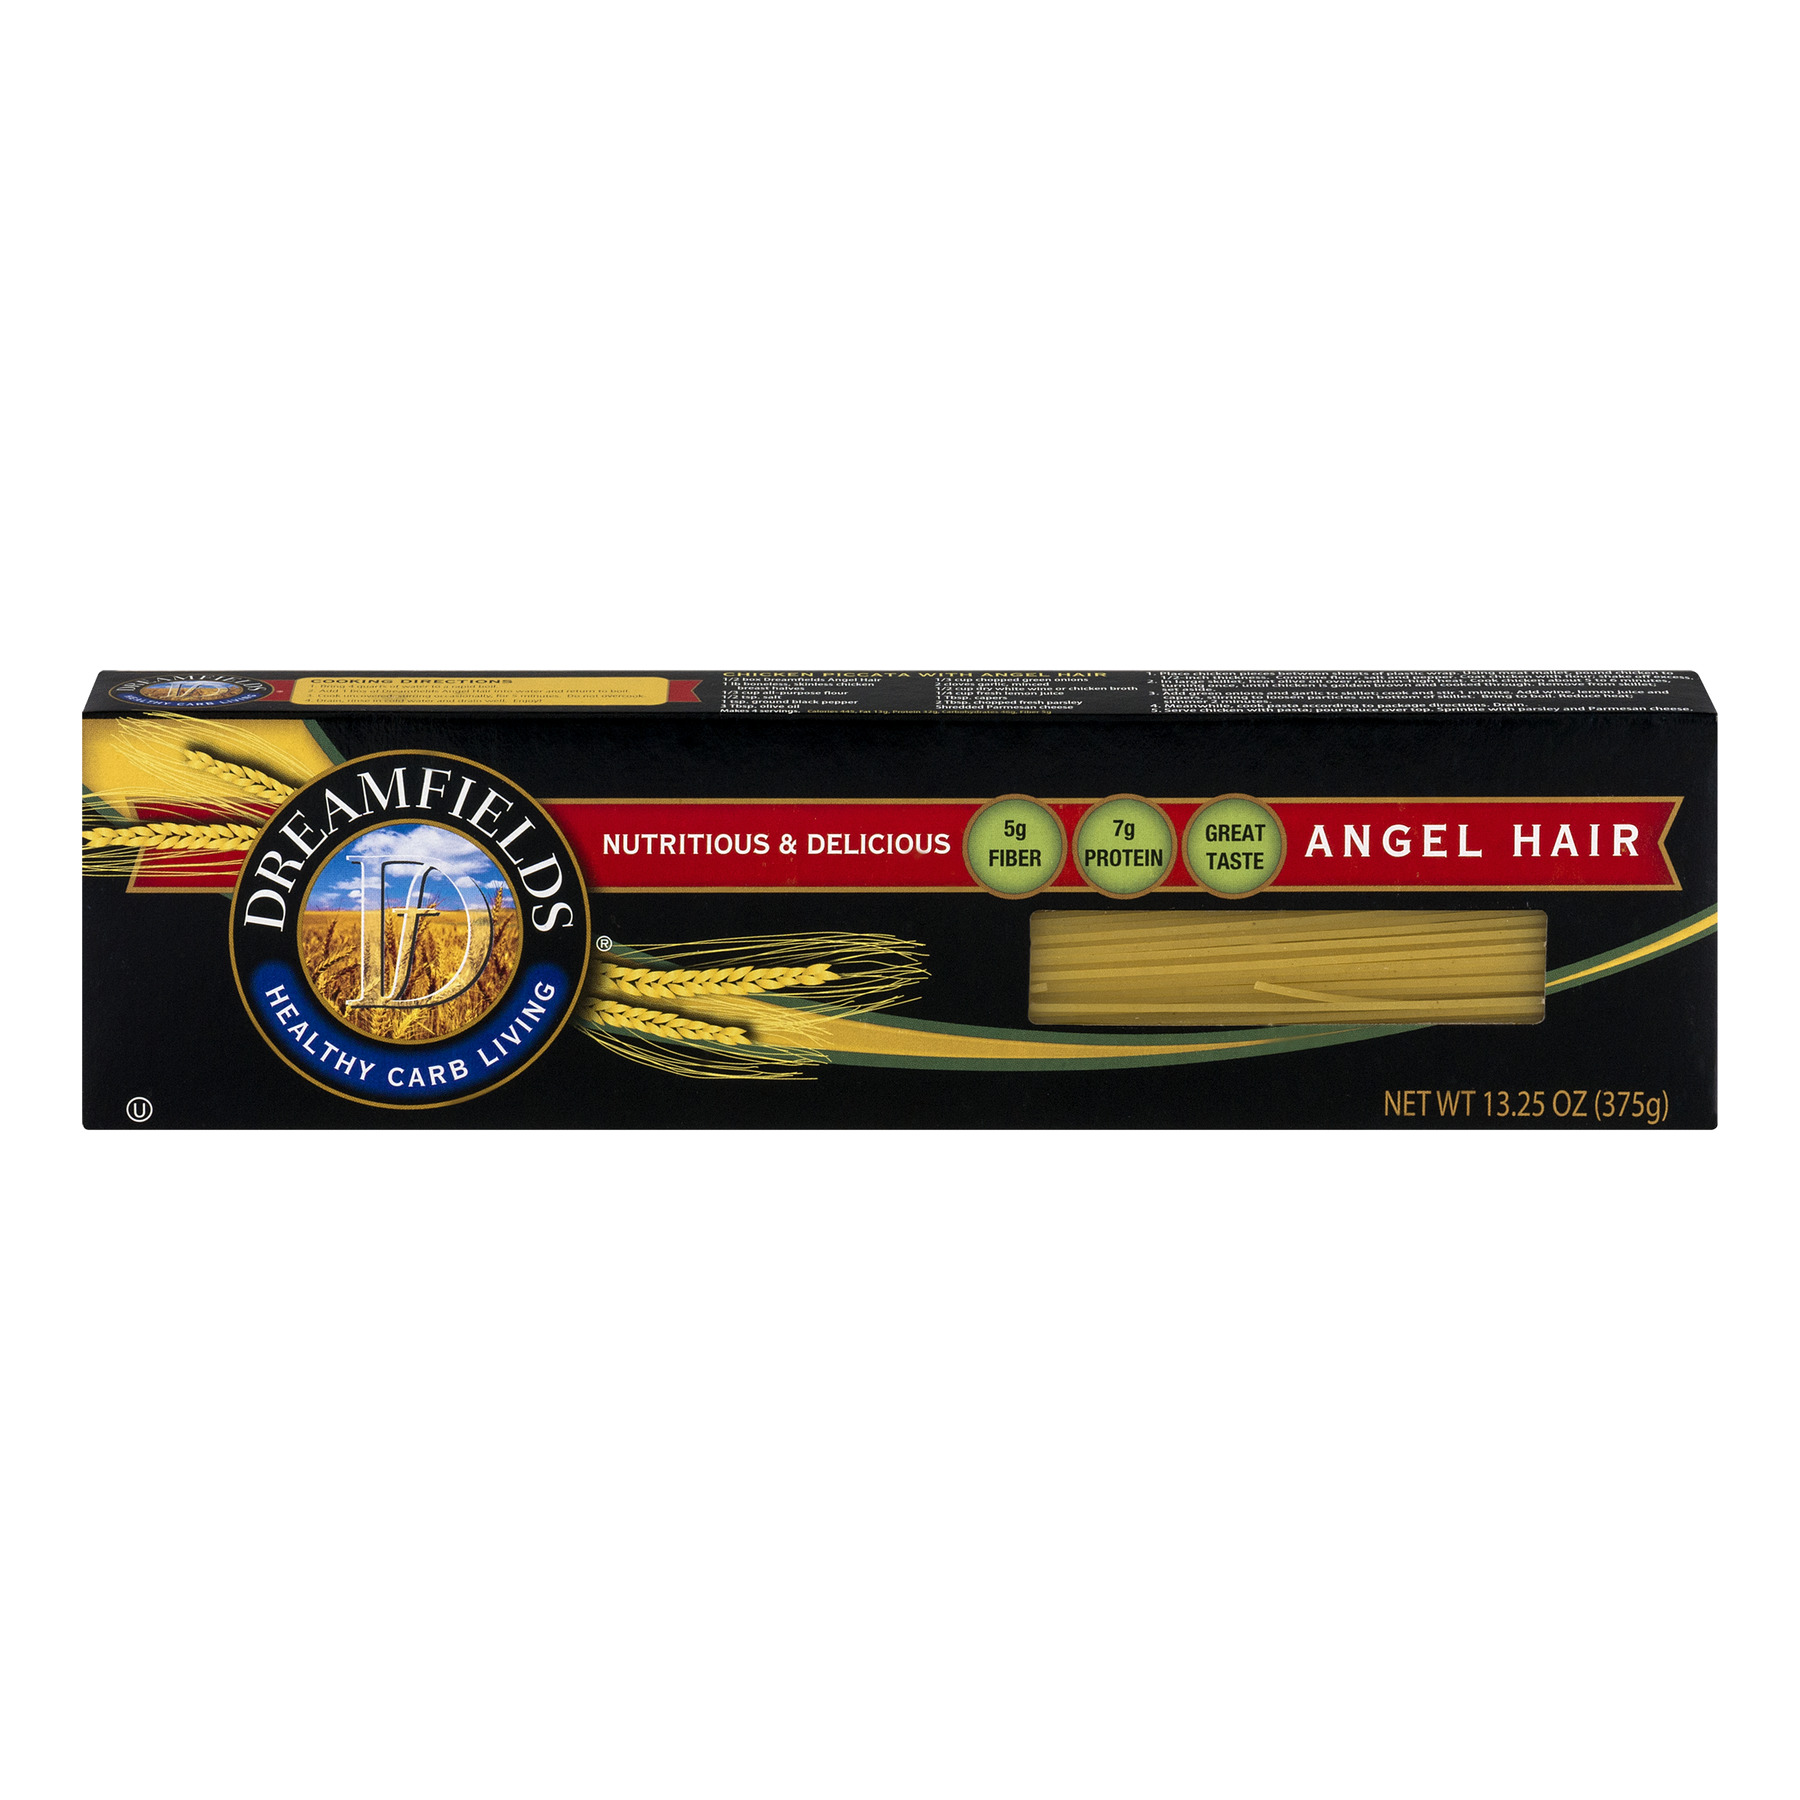 11 Pack Dreamfields Healthy Carb Living Angel Hair Pasta 13 25 Oz